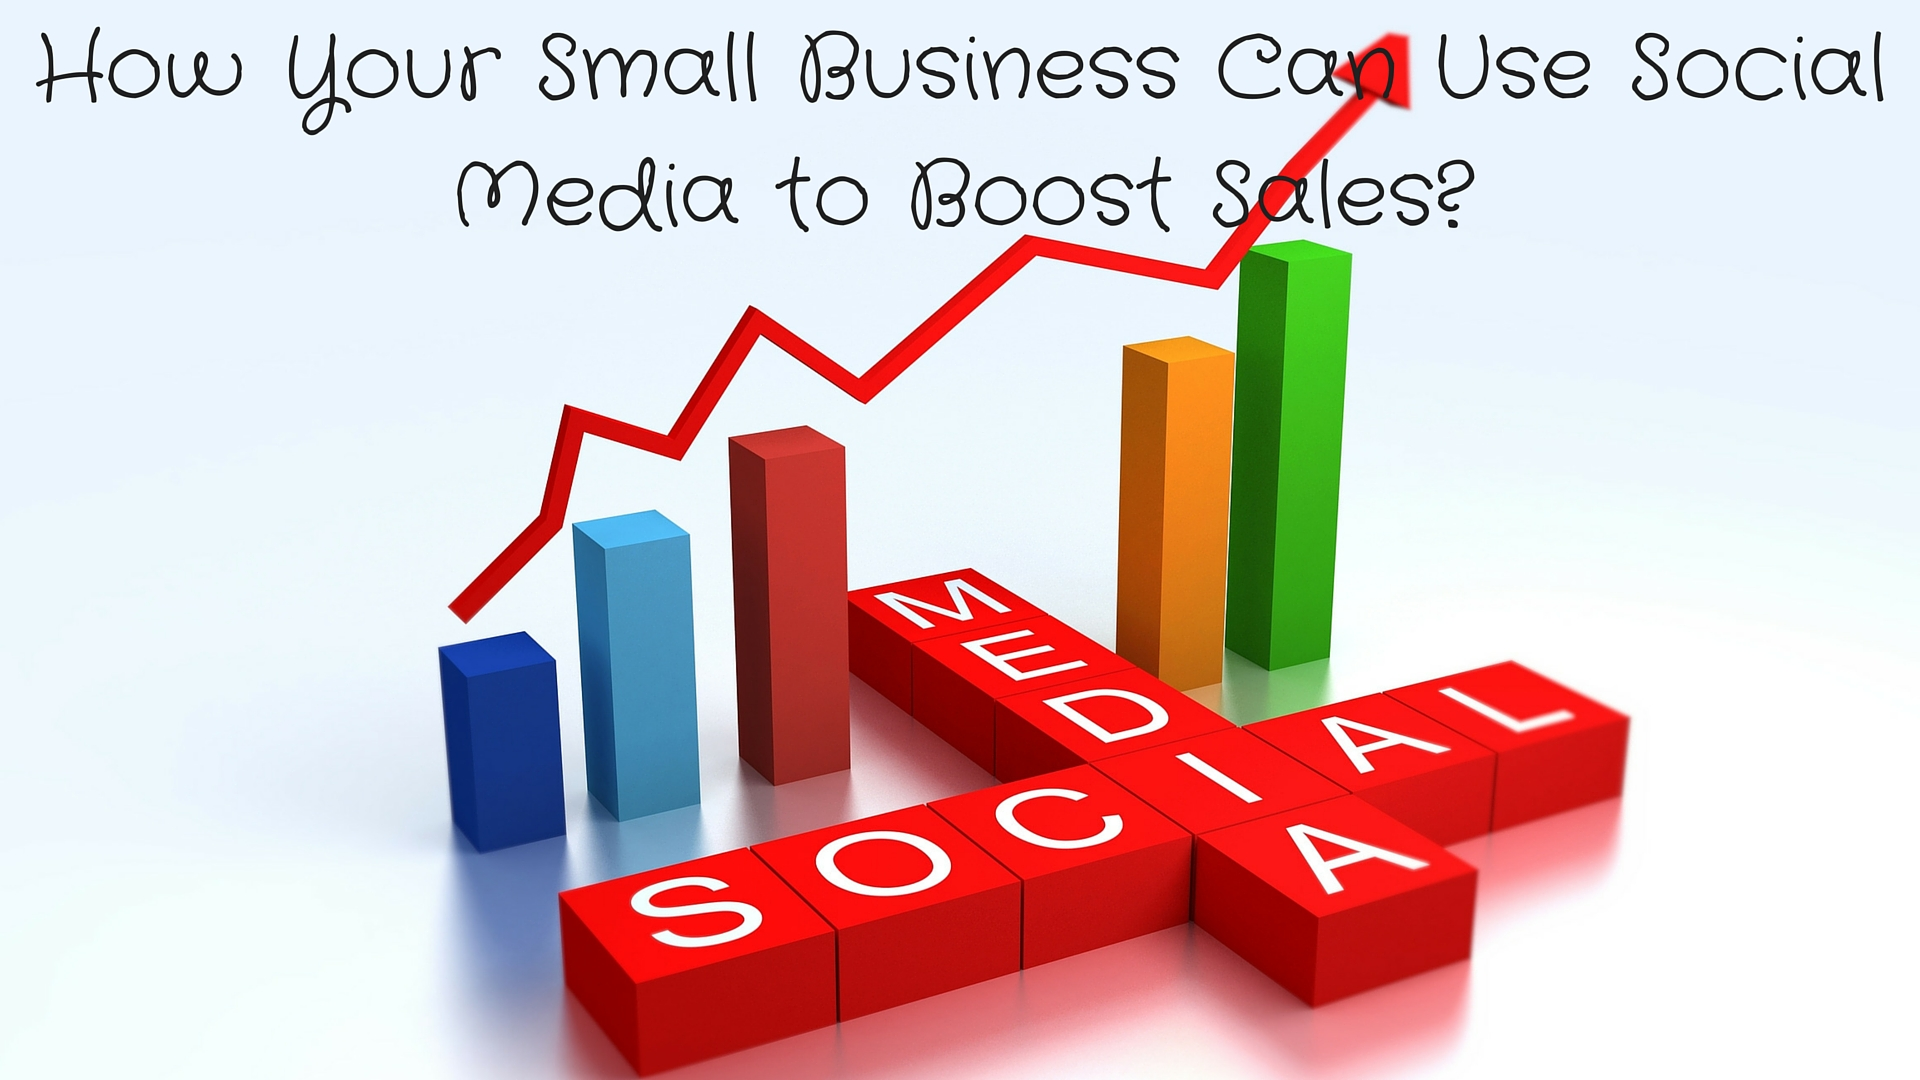 How Your Small Business Can Use Social Media to Boost Sales?